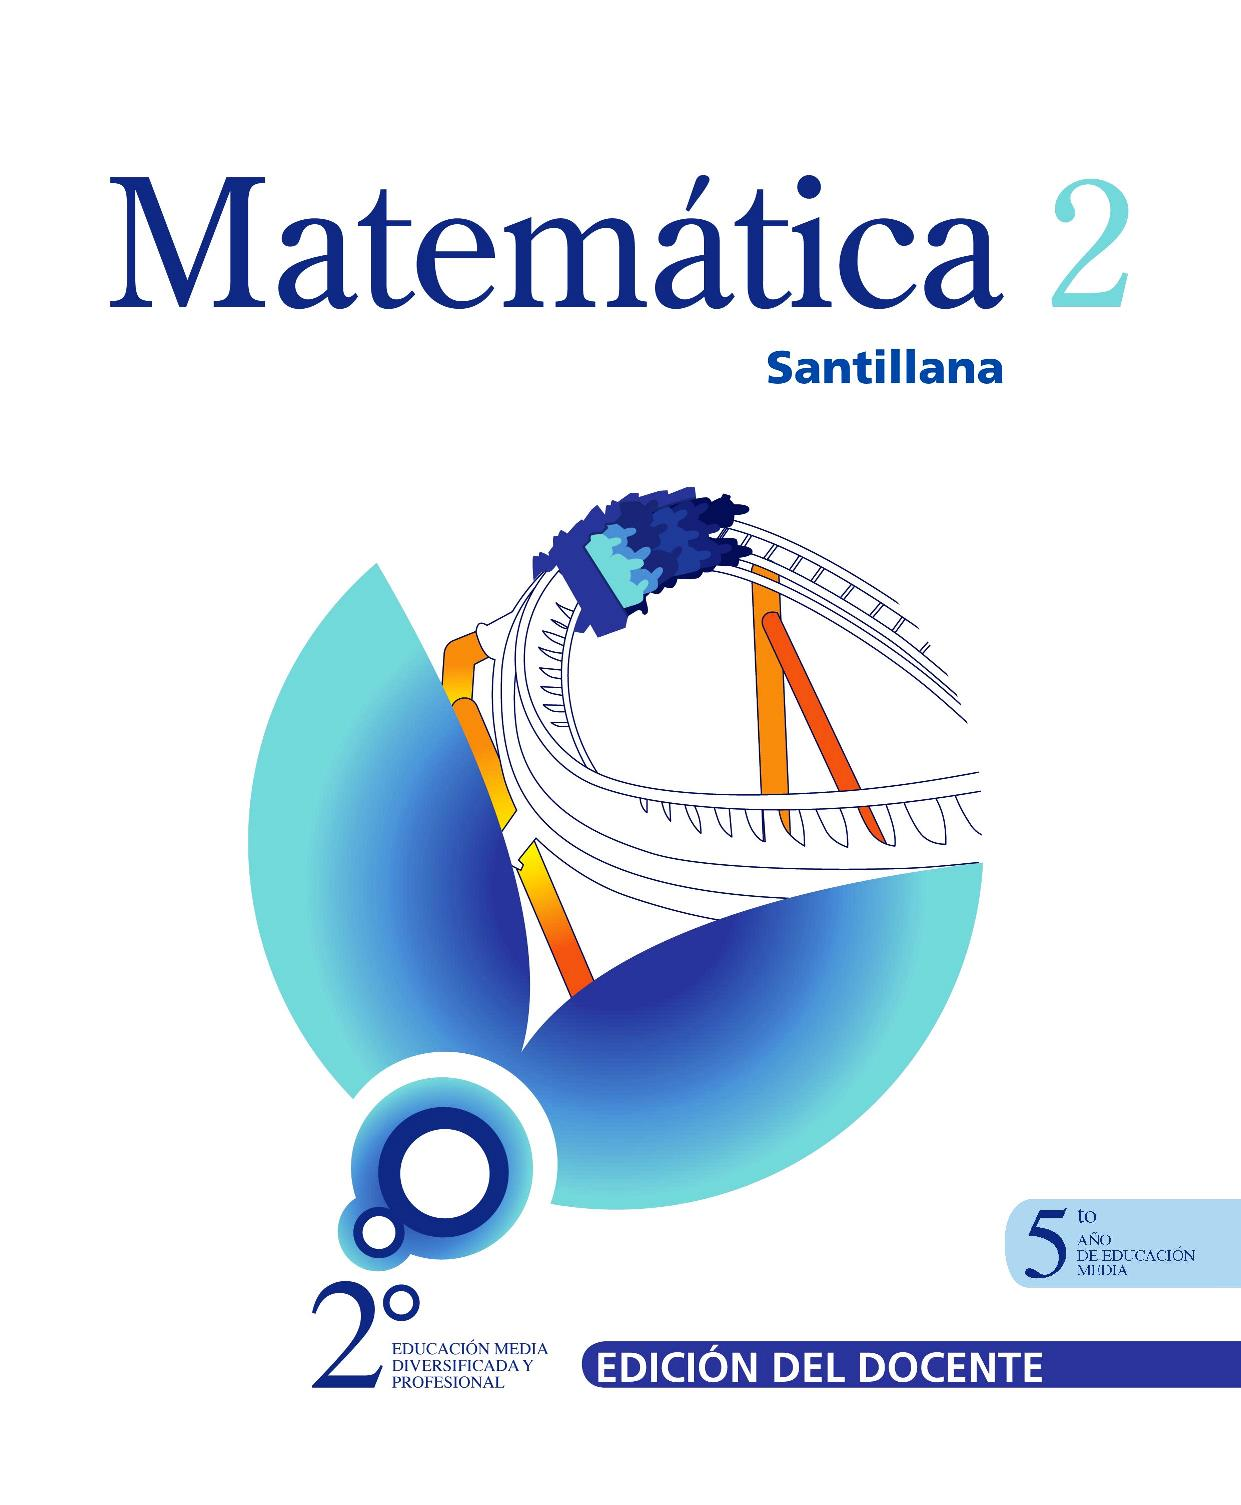 Matemática 2 5to Año De Educación Media Santillana Freelibros